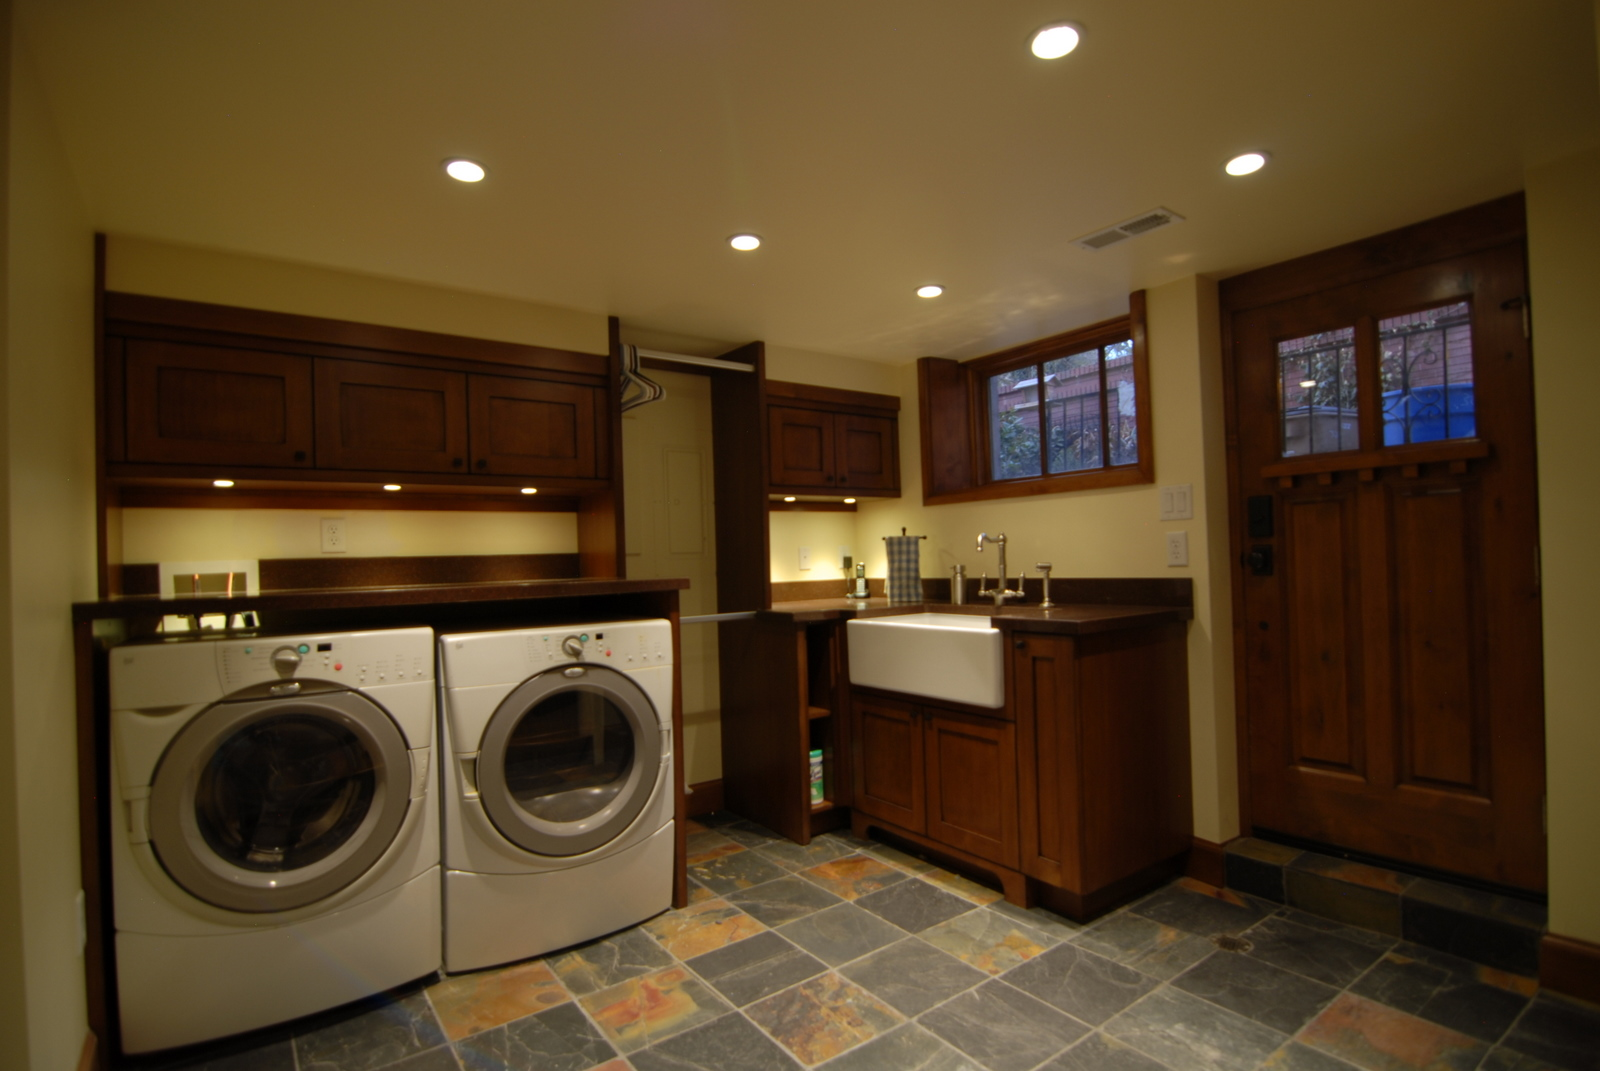 Enzy living laundry room basement in a craftsman home for Laundry room design ideas